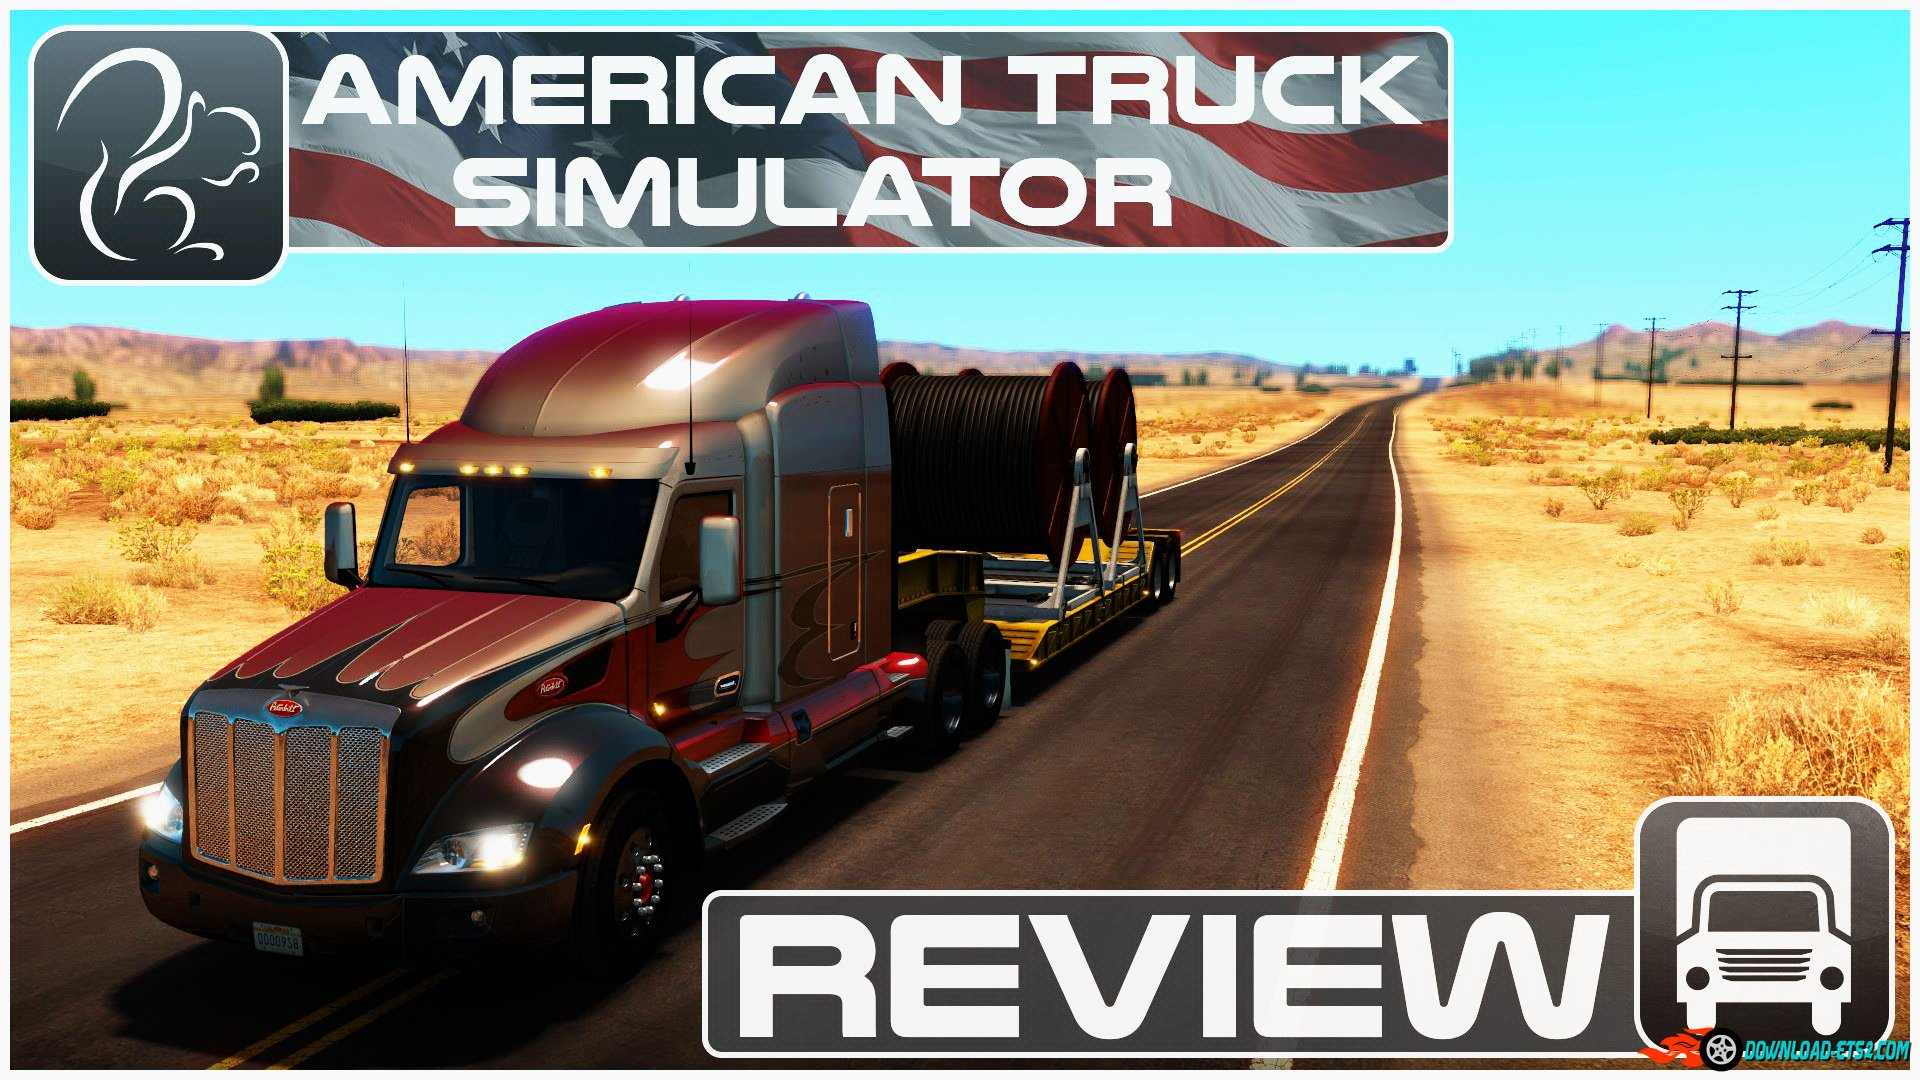 American Truck Simulator - Review and guide by Squirrel